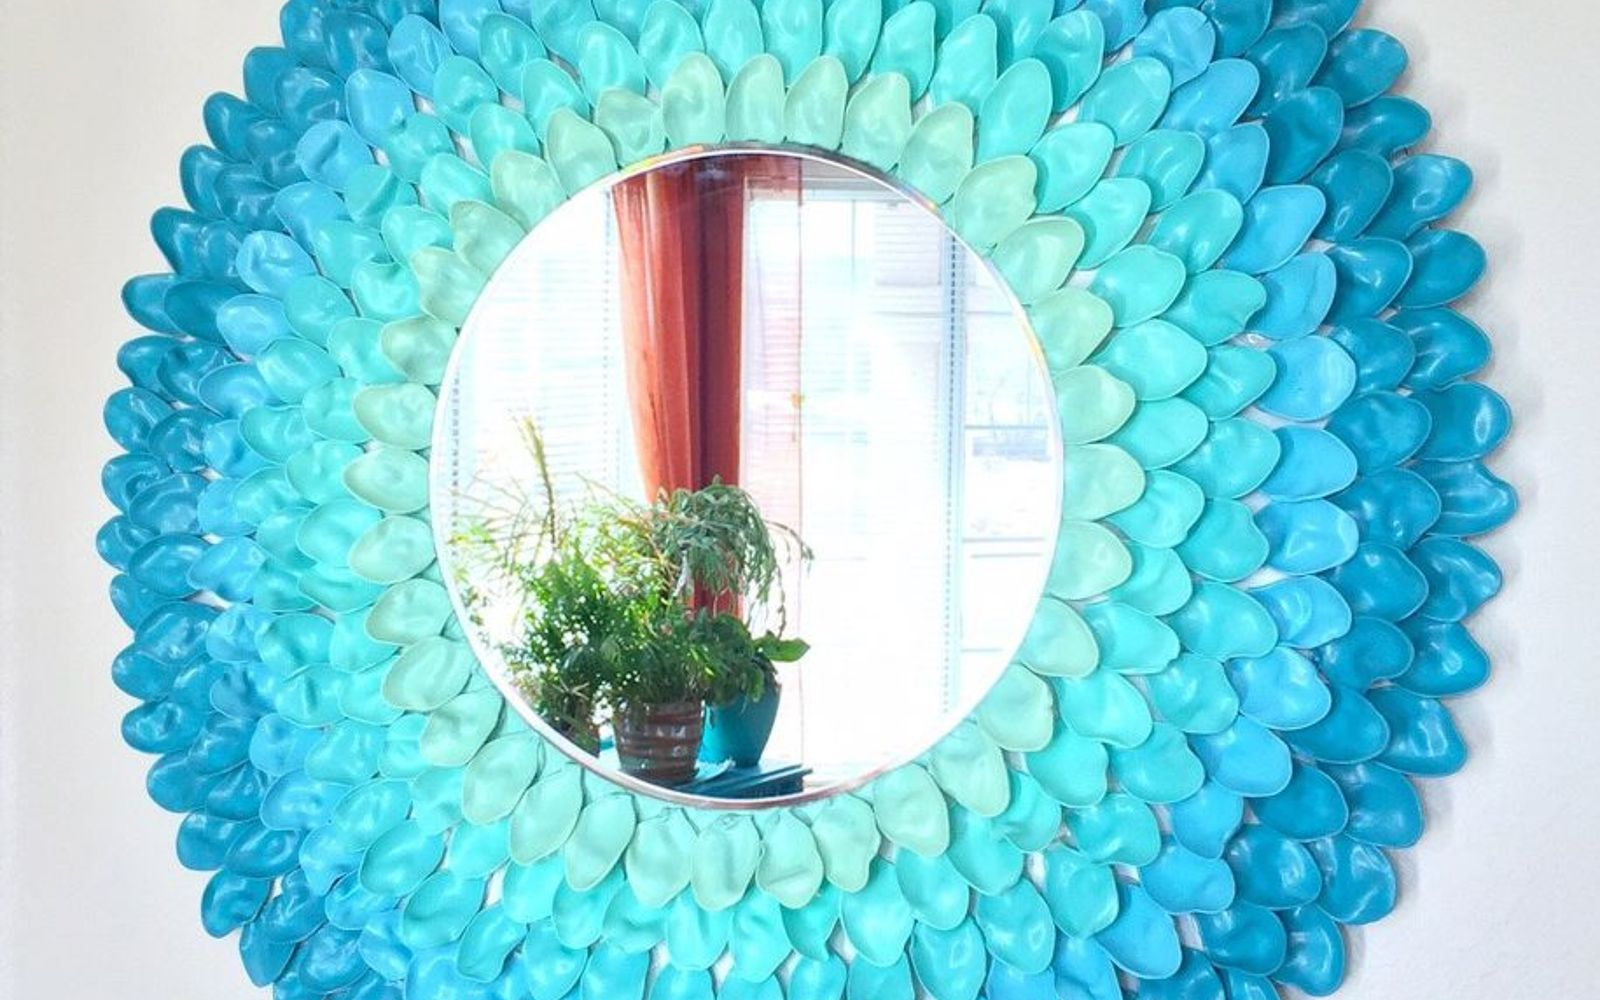 s these are the hottest diy spring trends of 2016, crafts, seasonal holiday decor, Fill your walls with DIY starburst mirrors